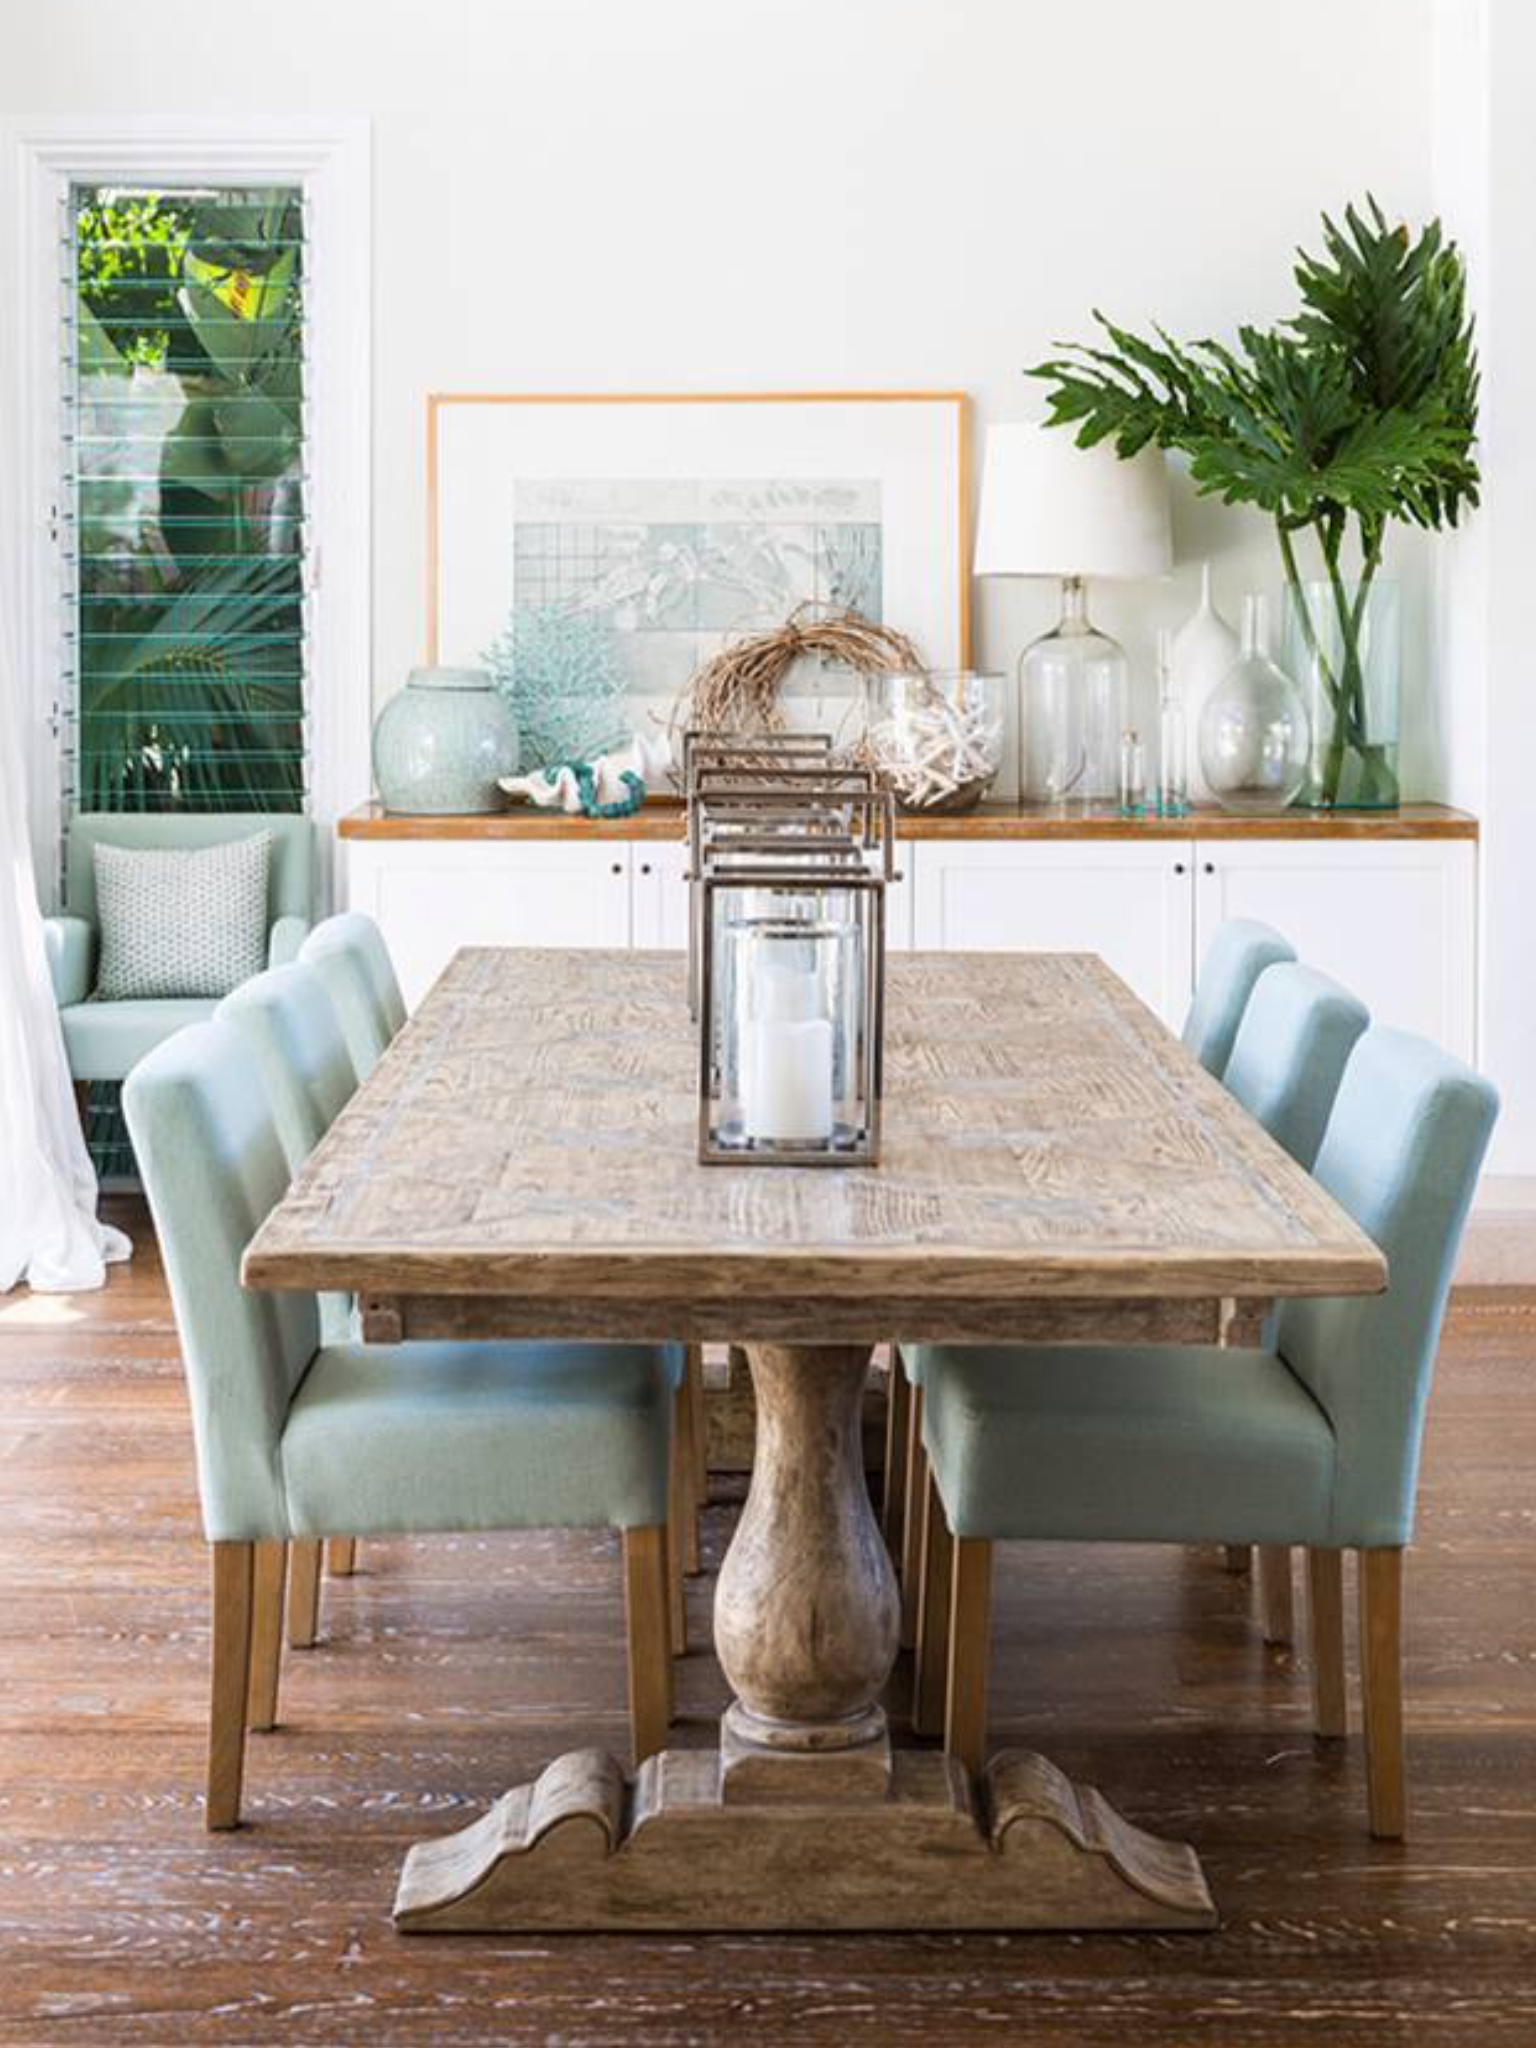 Coastal Dining Room  Where We Dine  Pinterest  Room Beach And Alluring Coastal Dining Room Tables Decorating Inspiration